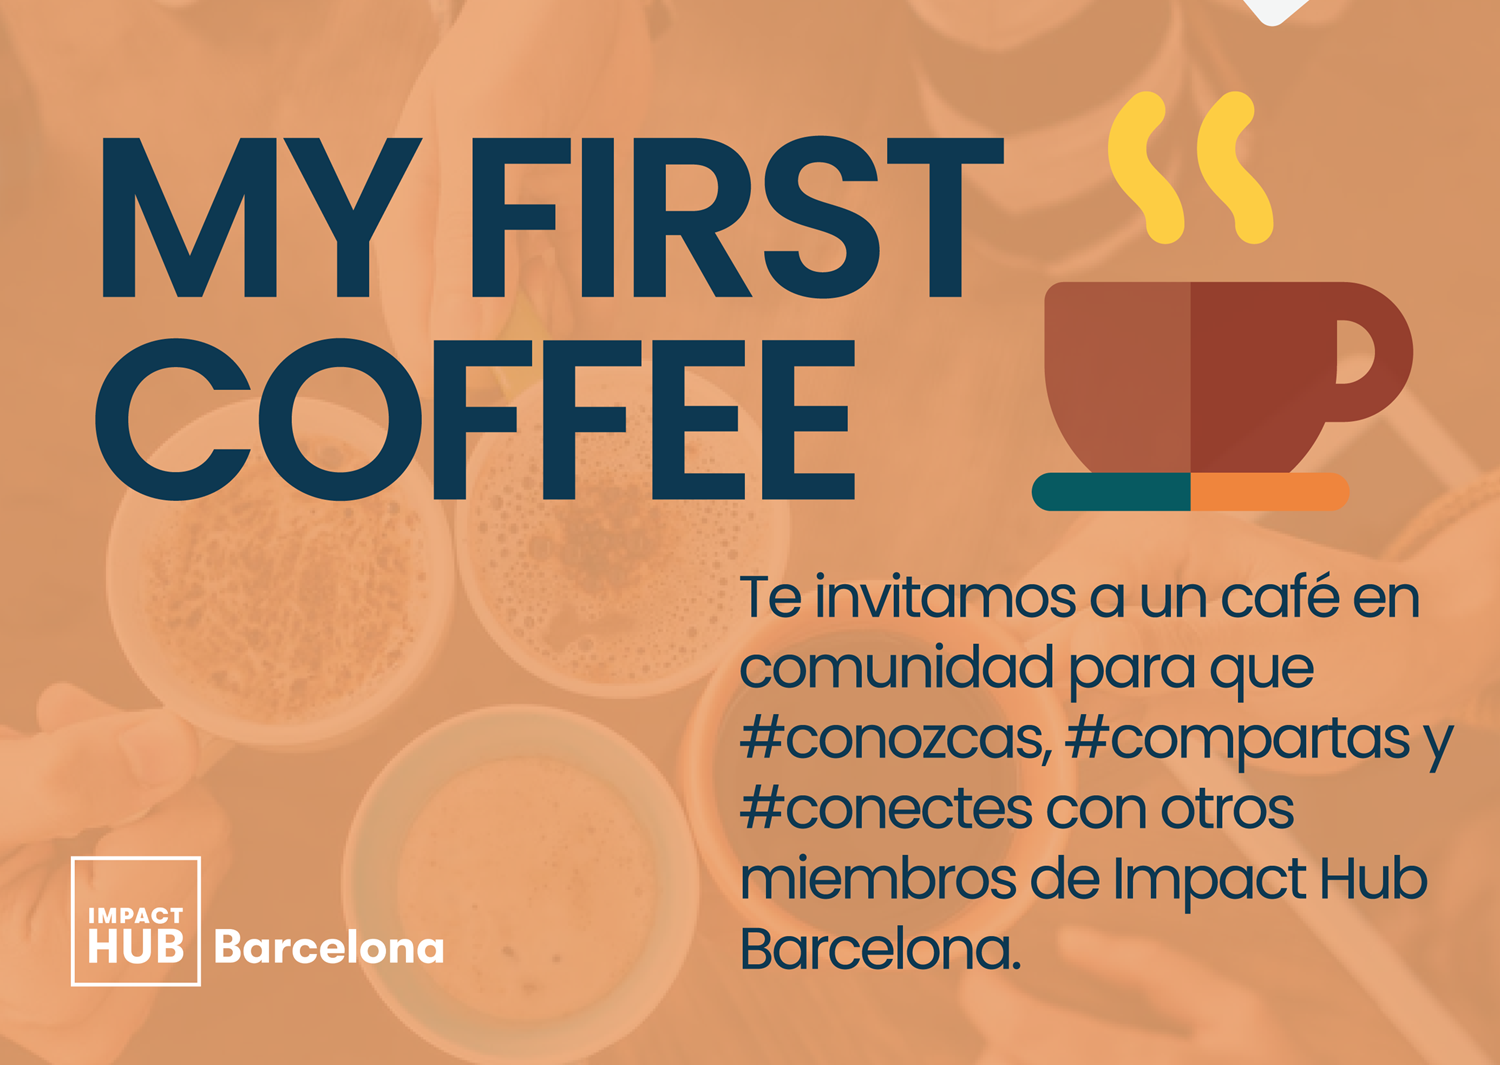 Copy of My first coffee